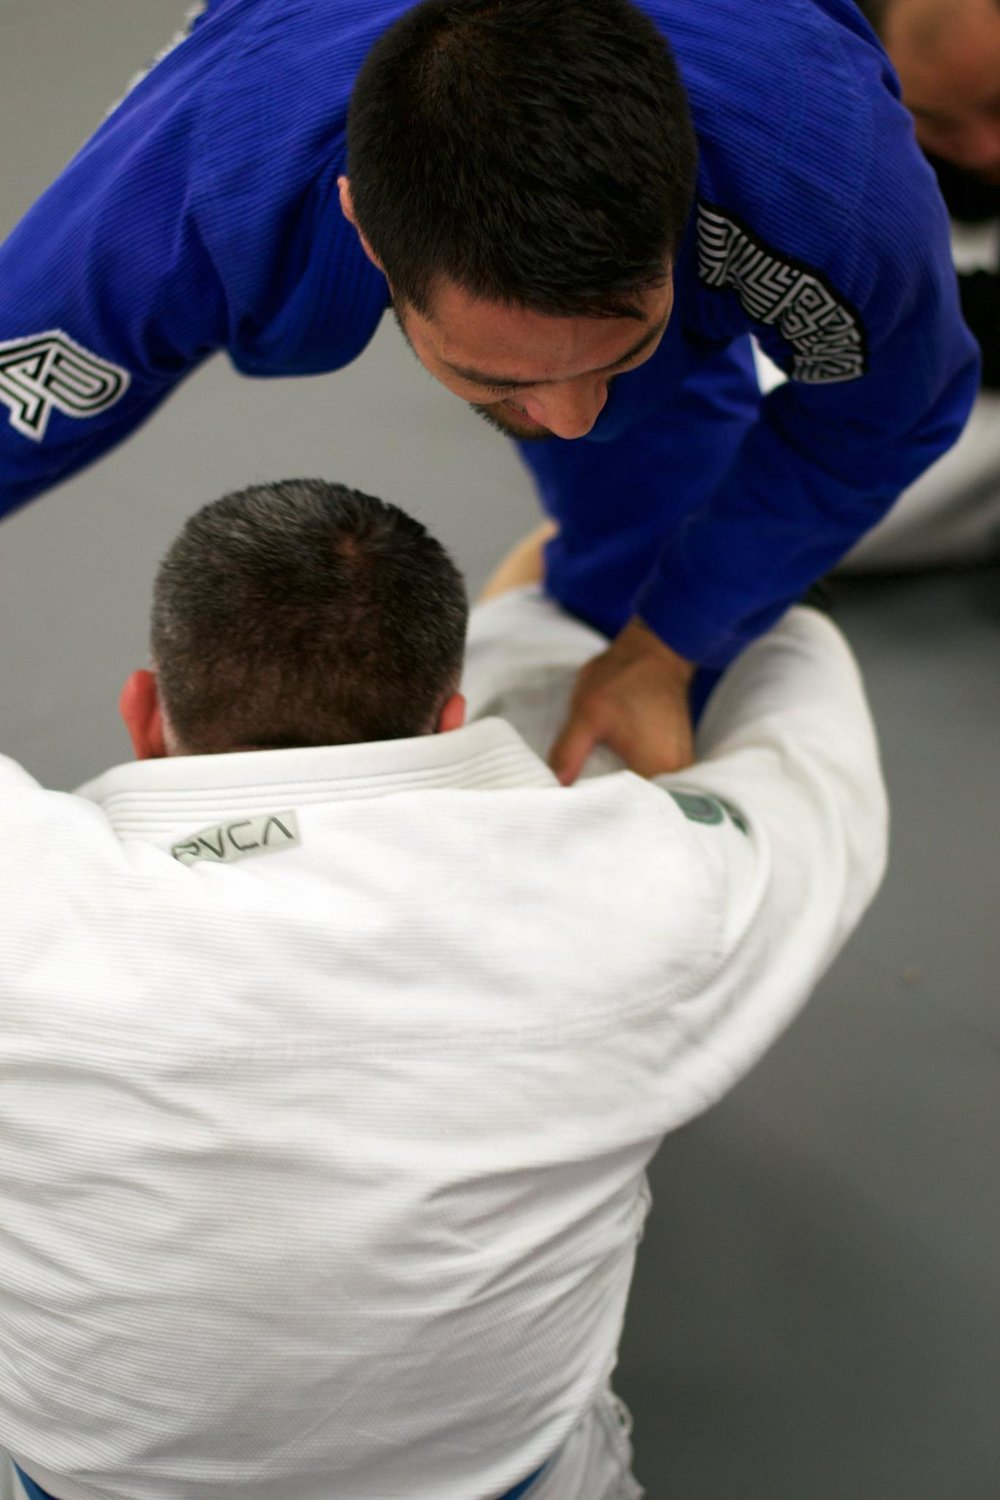 https://www.jiujitsutimes.com/get-over-it/